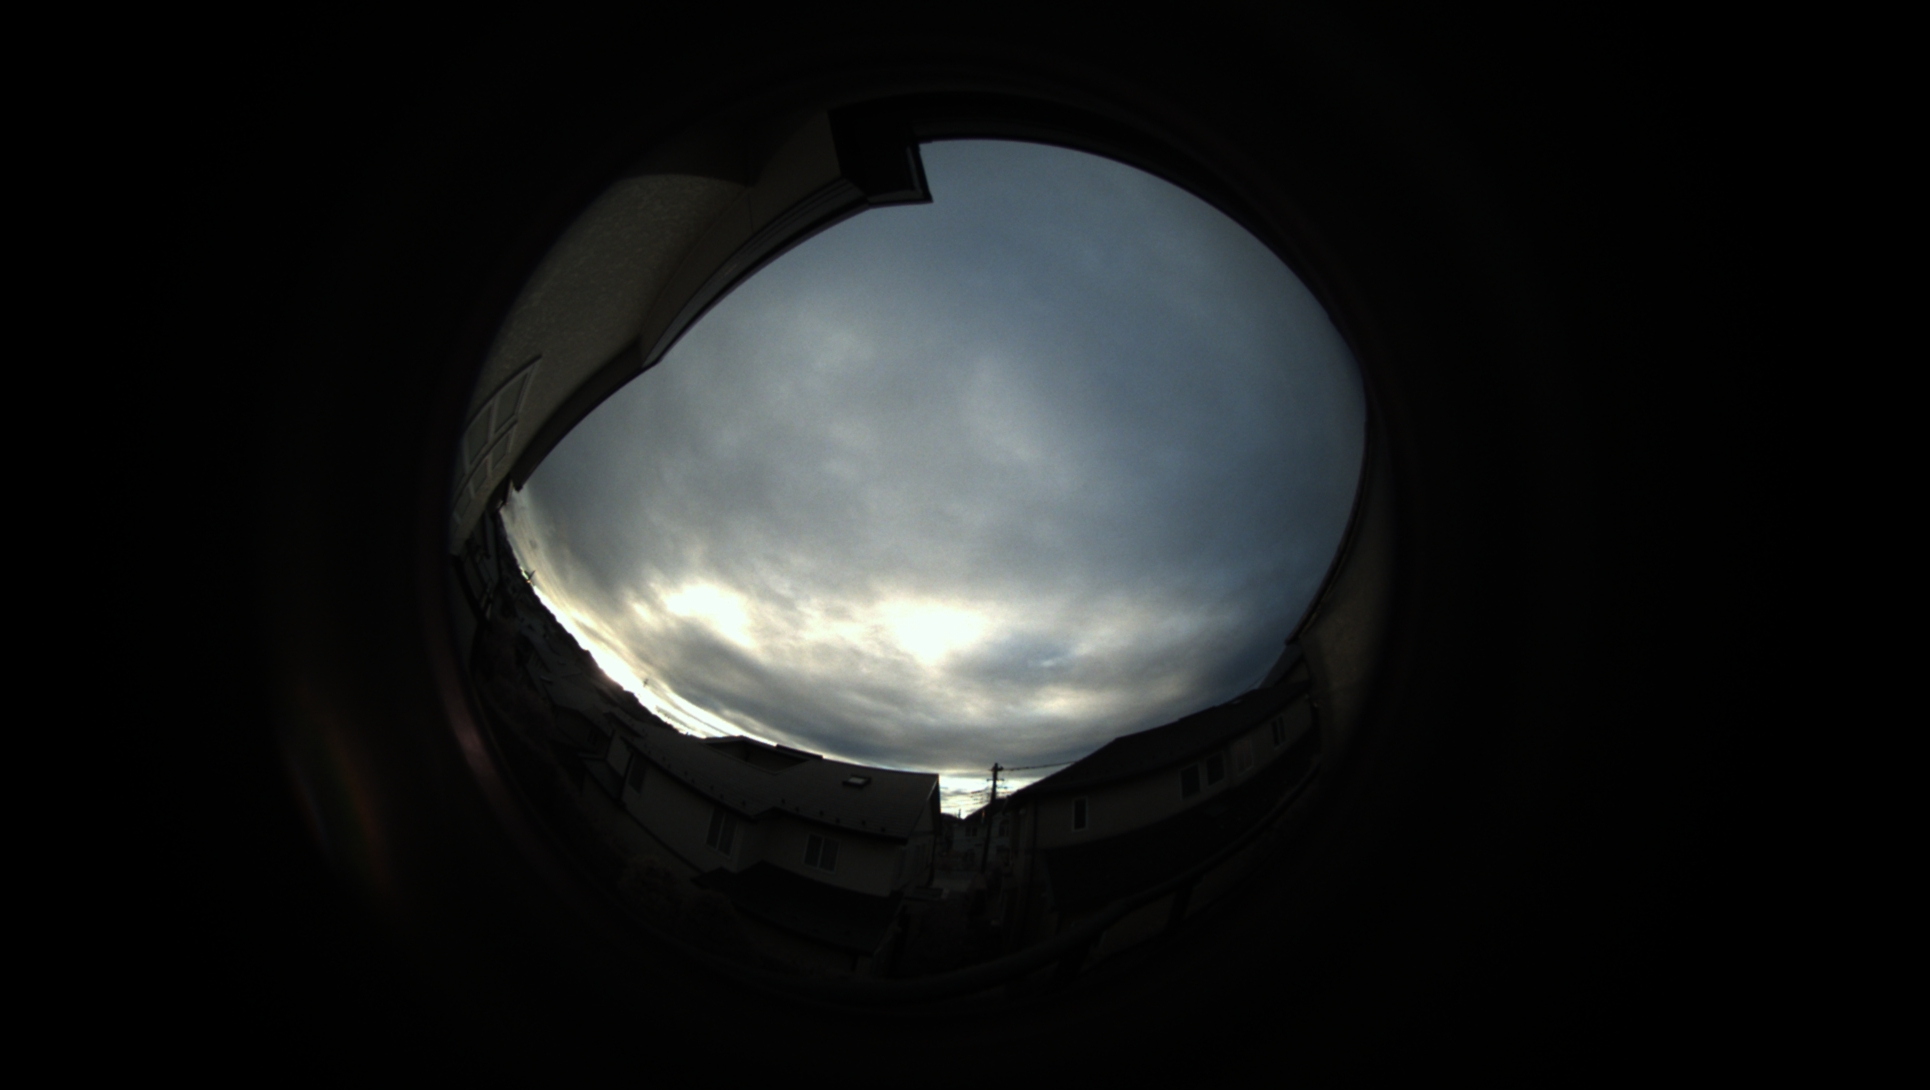 05_54_35_Capture_00001 05_54_35_Lense-FishEye1